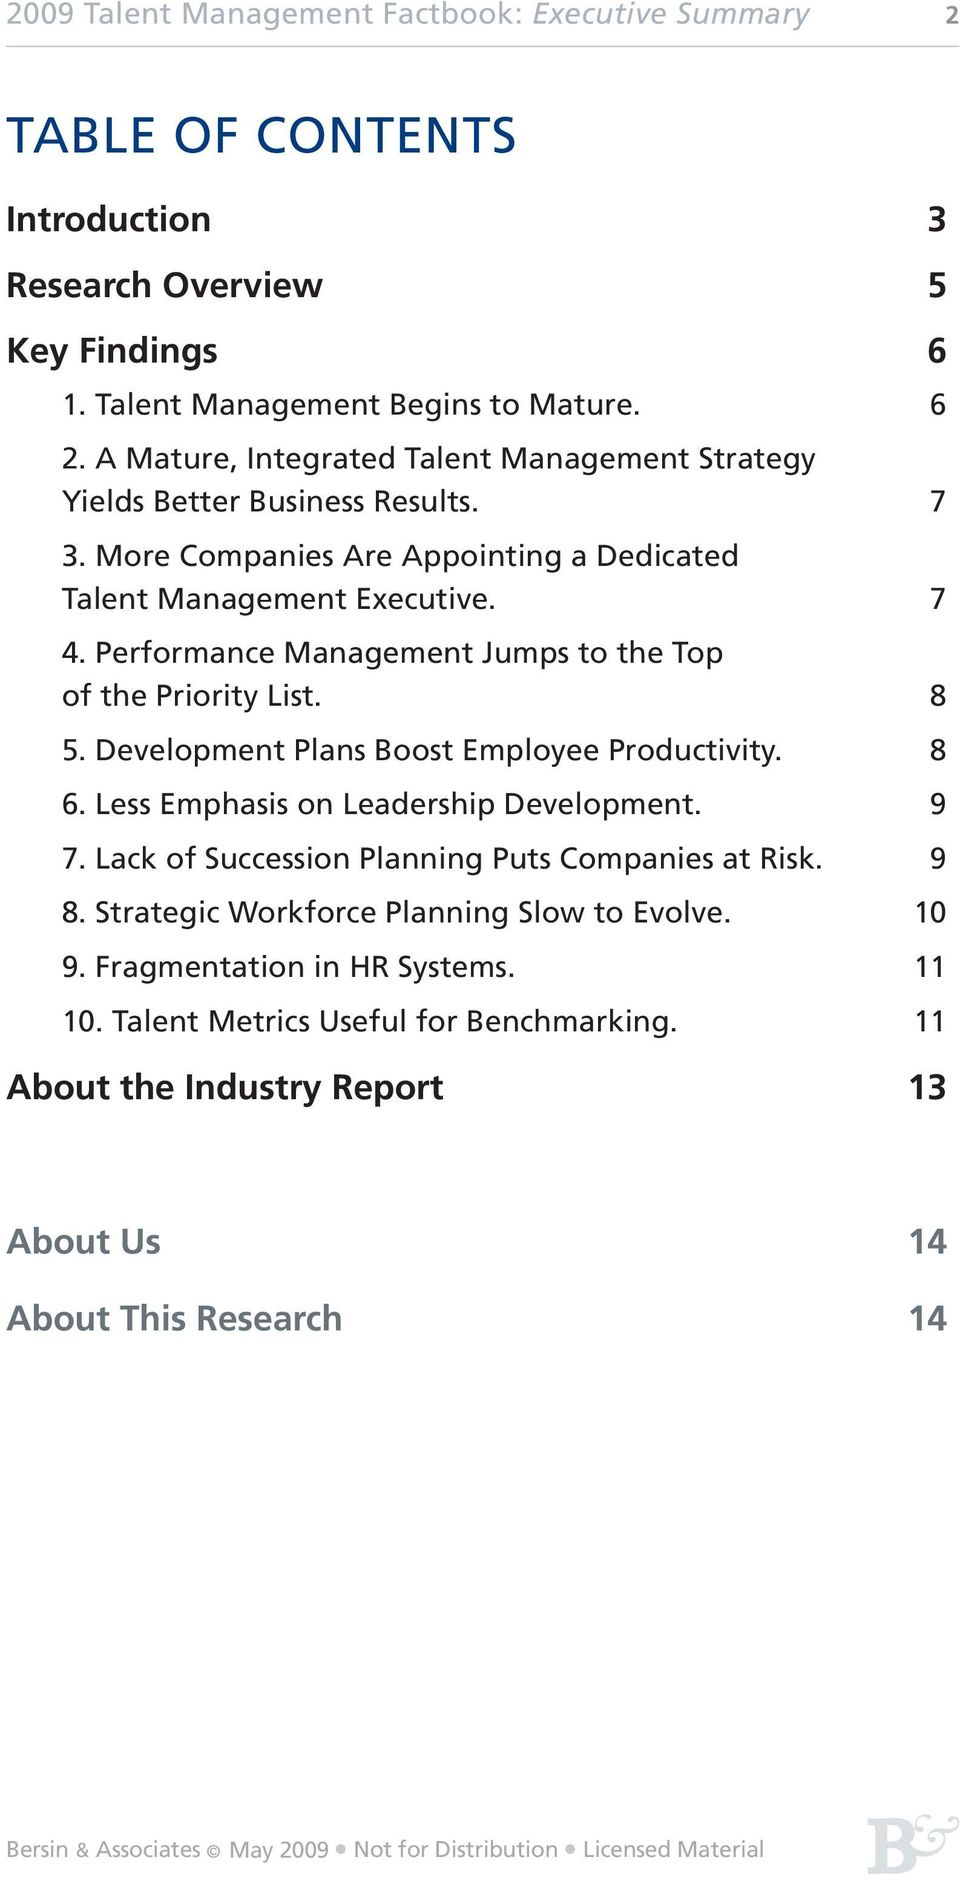 Performance Management Jumps to the Top of the Priority List. 8 5. Development Plans Boost Employee Productivity. 8 6. Less Emphasis on Leadership Development. 9 7.